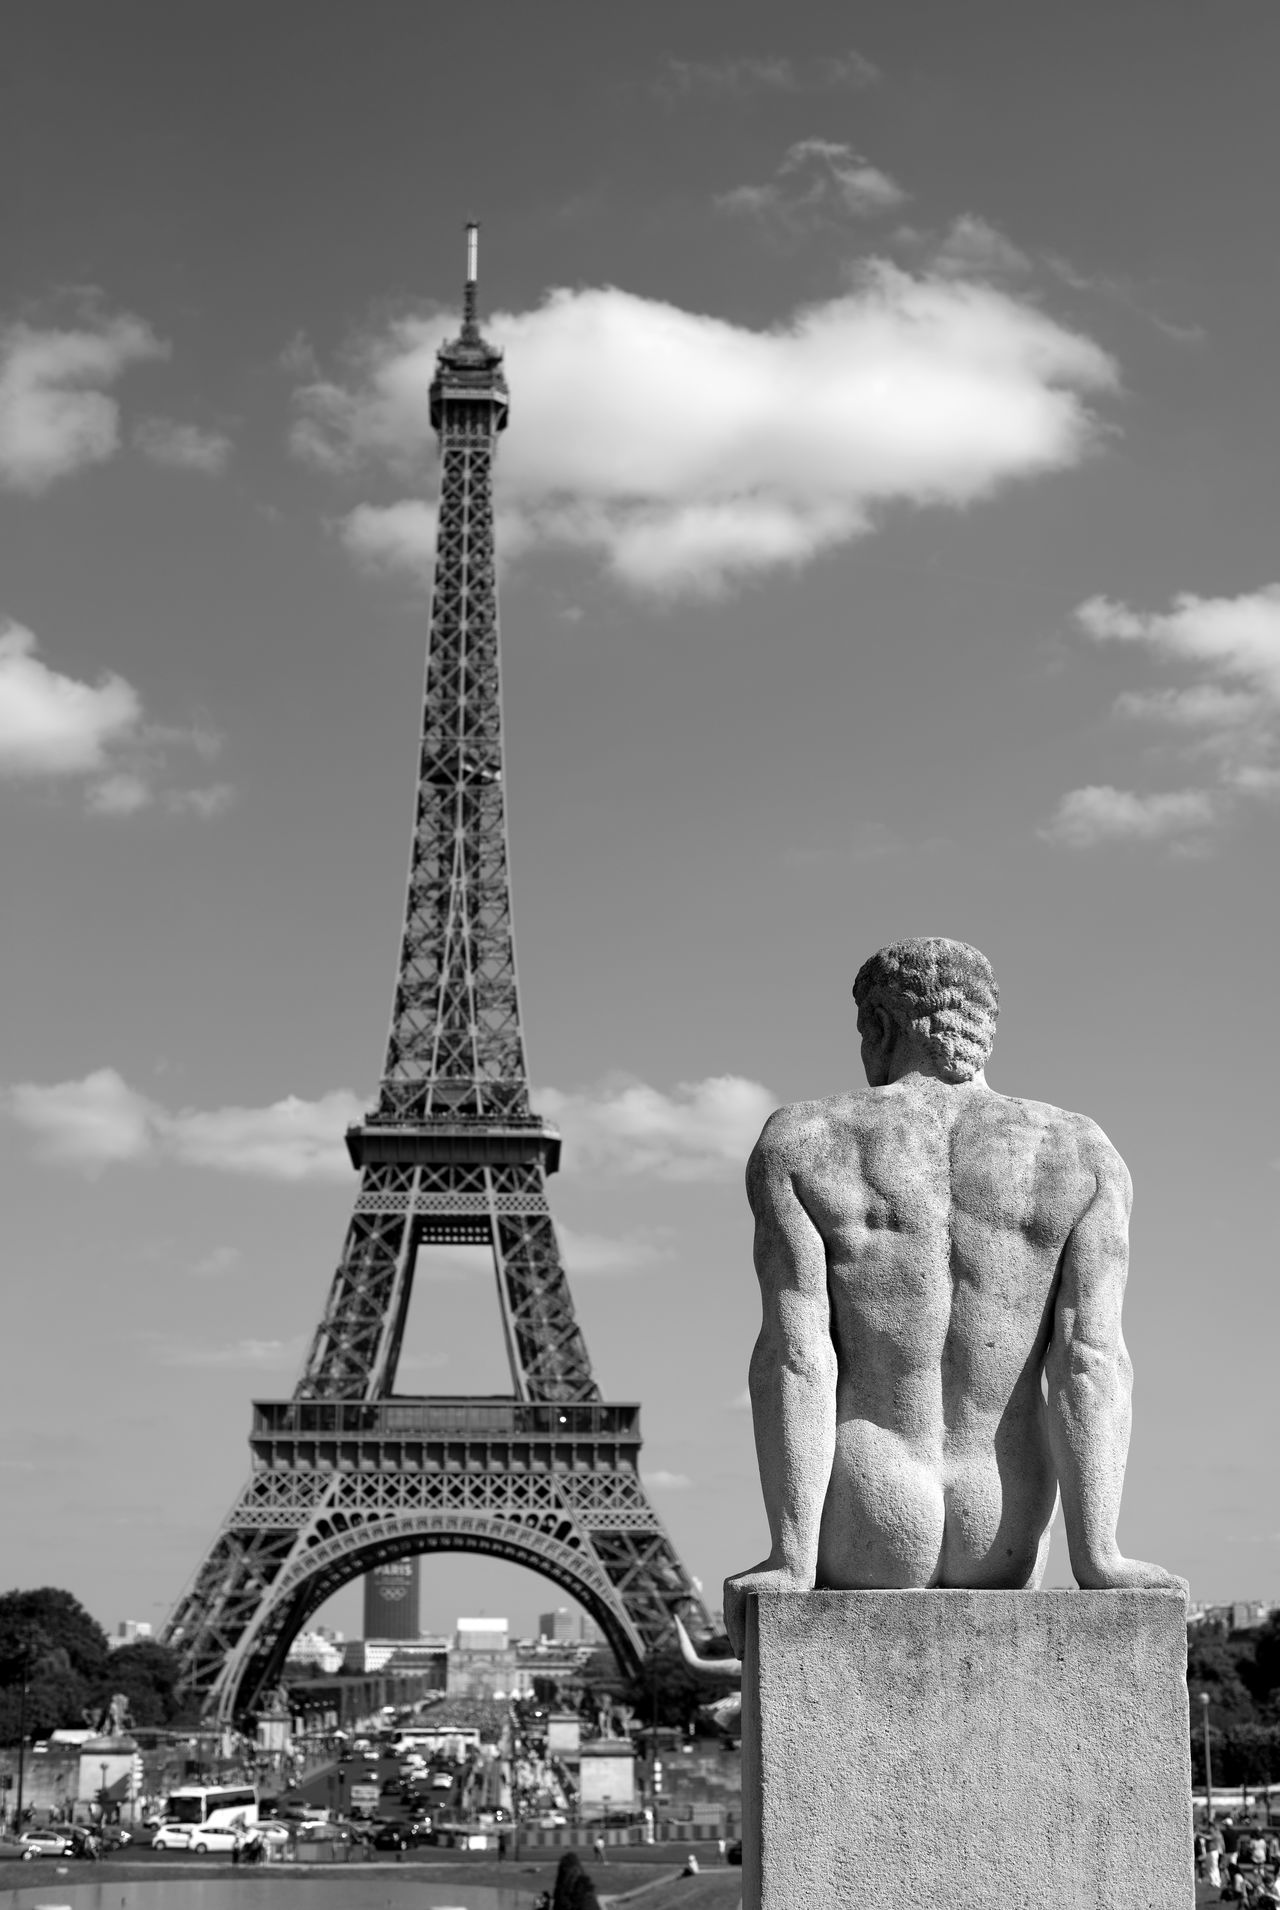 For eternity Black And White Blackandwhite Blackandwhite Photography Eiffel Tower Eiffeltower Paris, France  Statigram Statue Statues And Monuments Statues/sculptures Trocadero